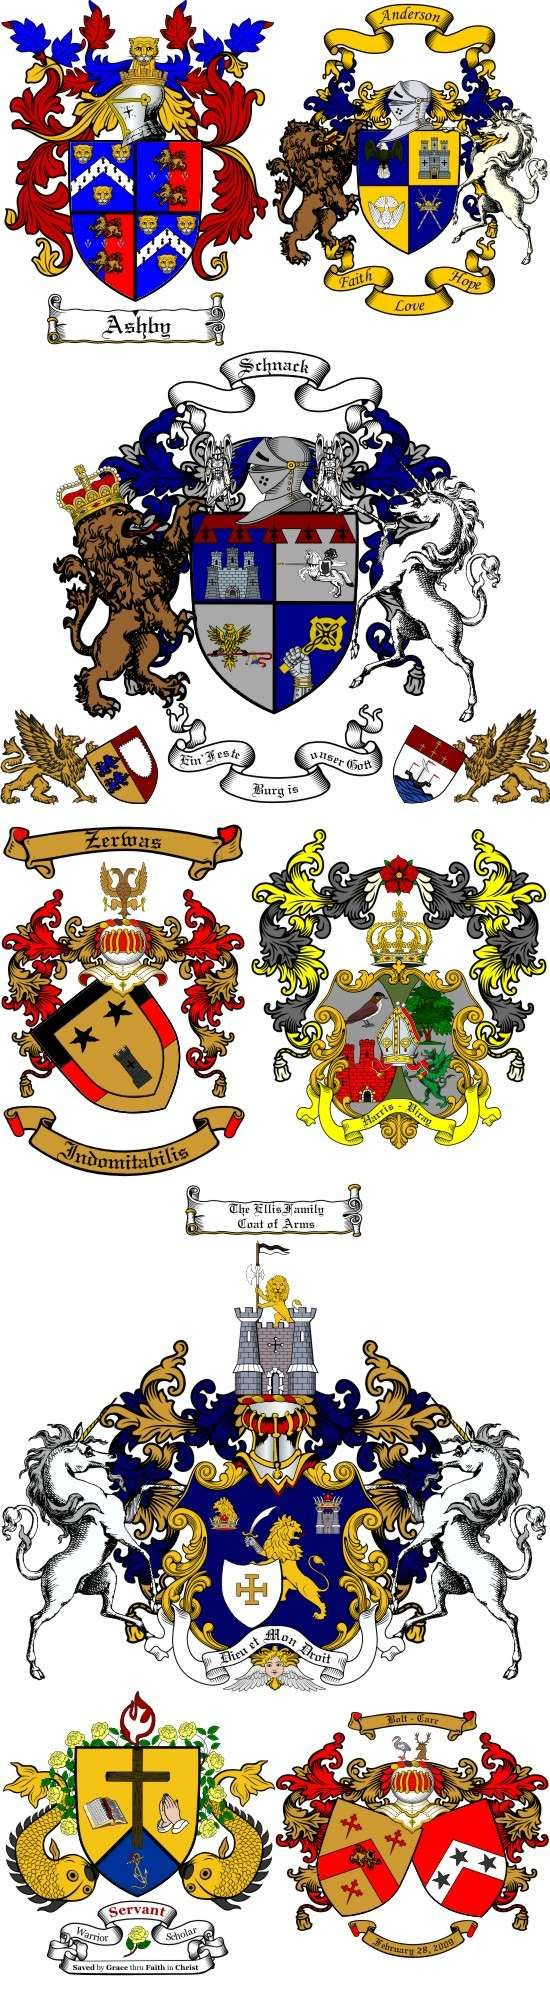 Personal or Family Coat of Arms Samples | Teaching Medieval History